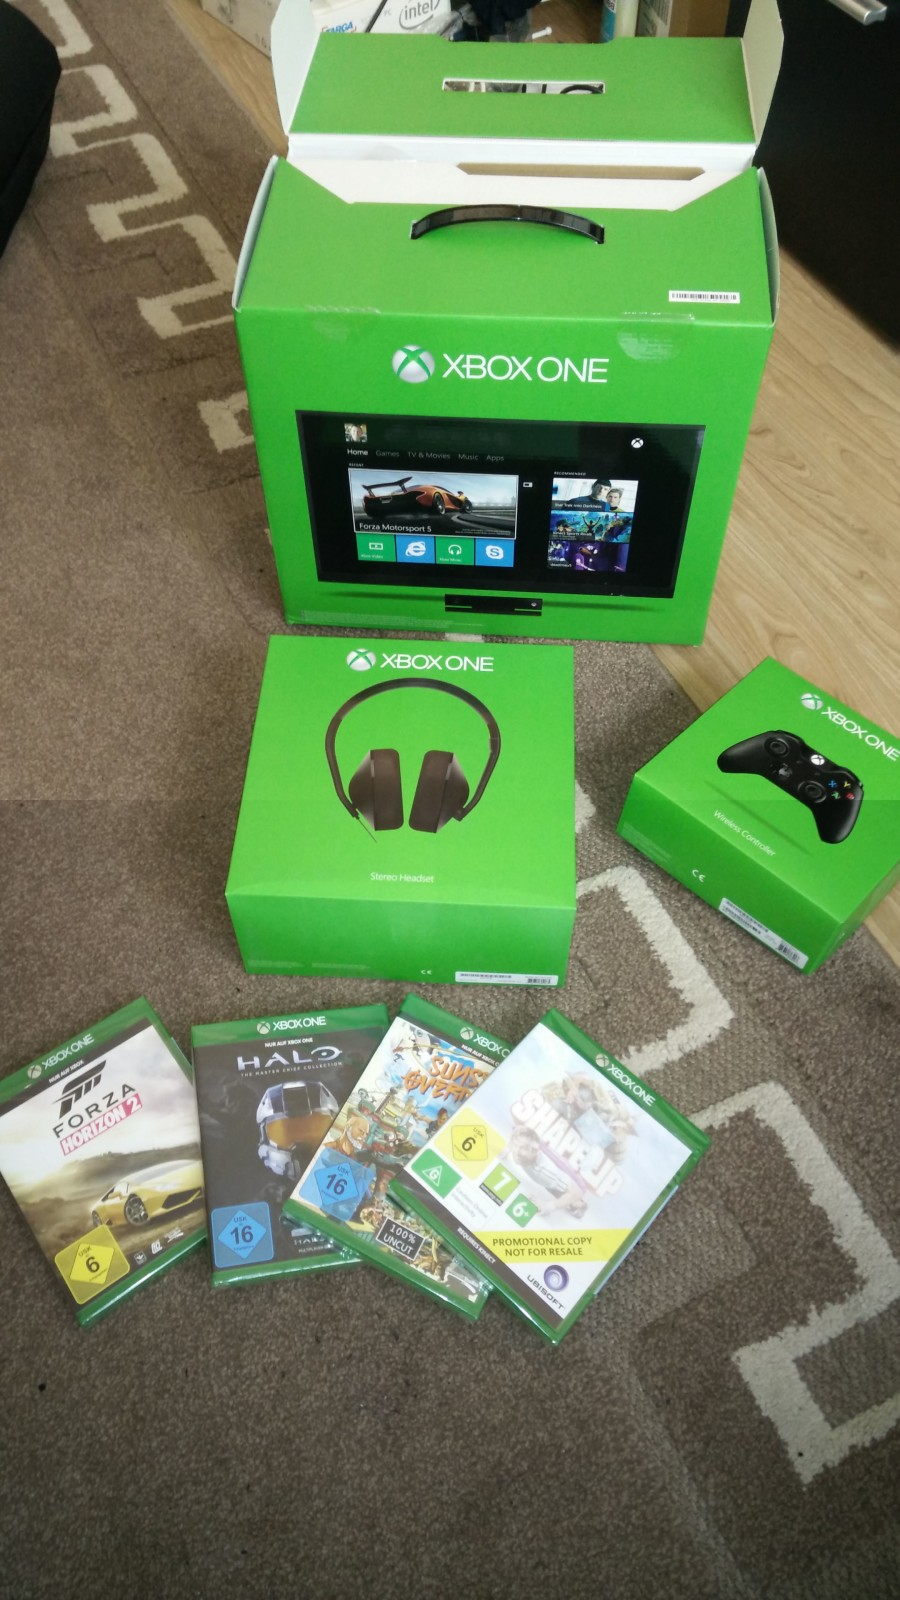 Xbox One Lieferumfang